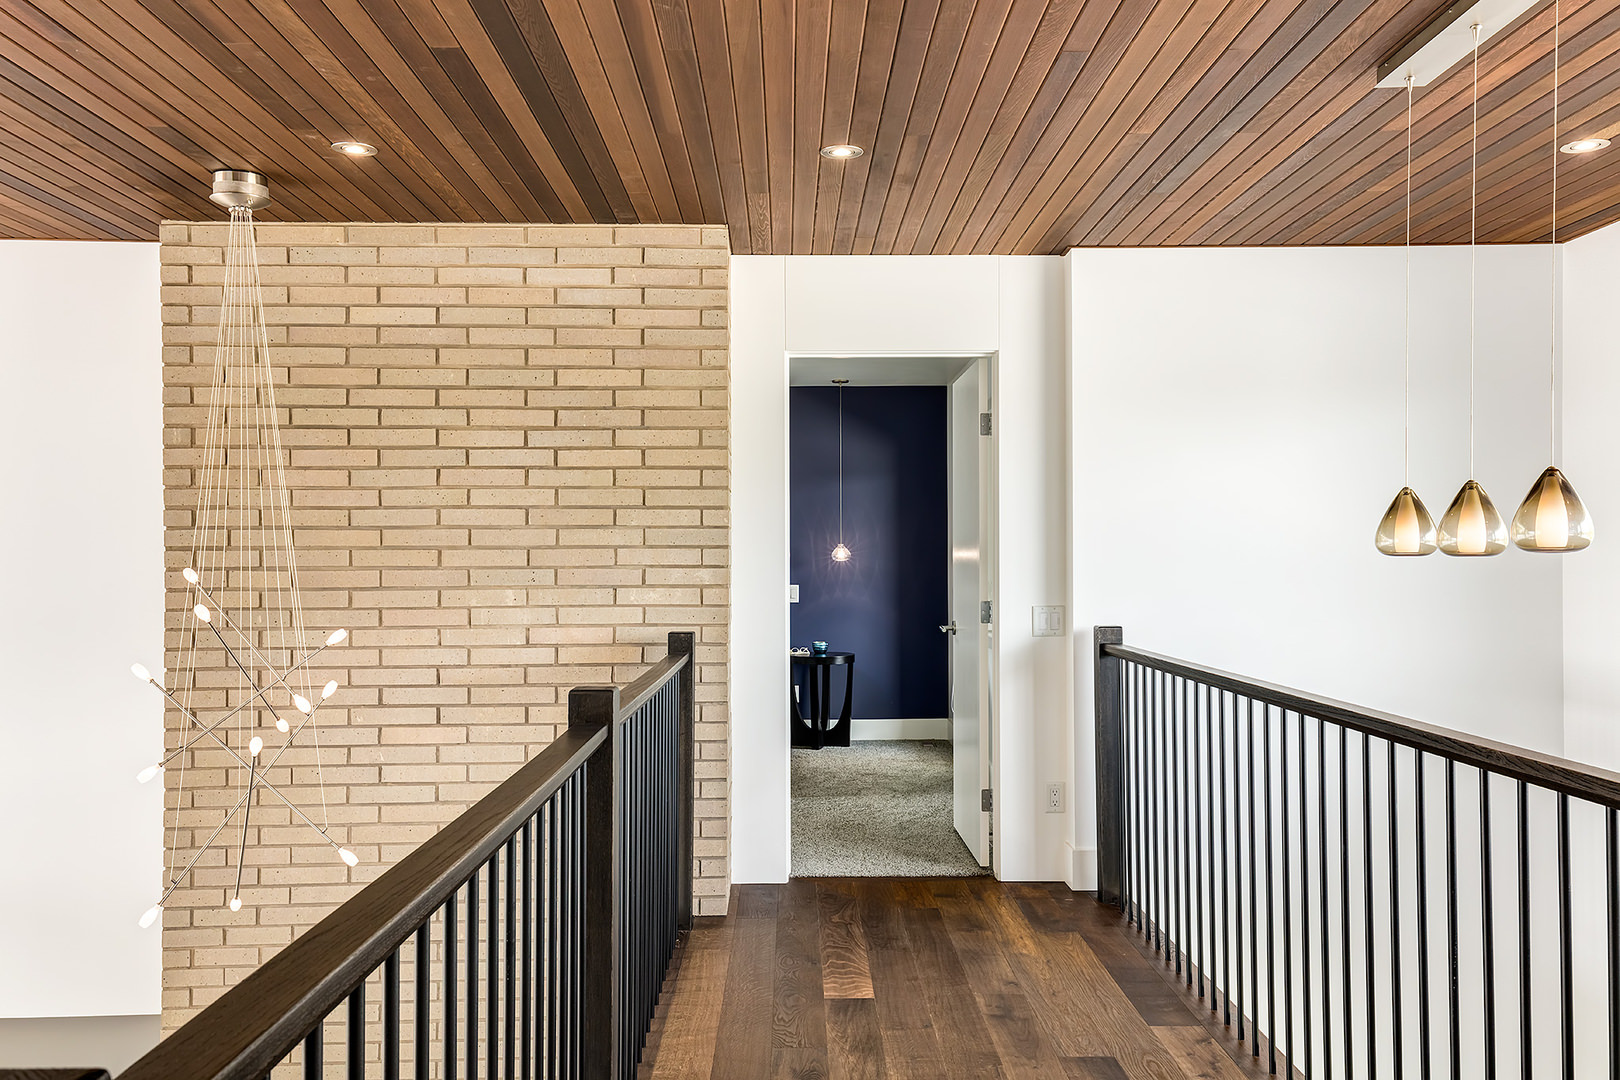 The short wooden bridge way connecting the staircase to the other rooms. The railings are made of hardwood while the floor is covered with wood planks.